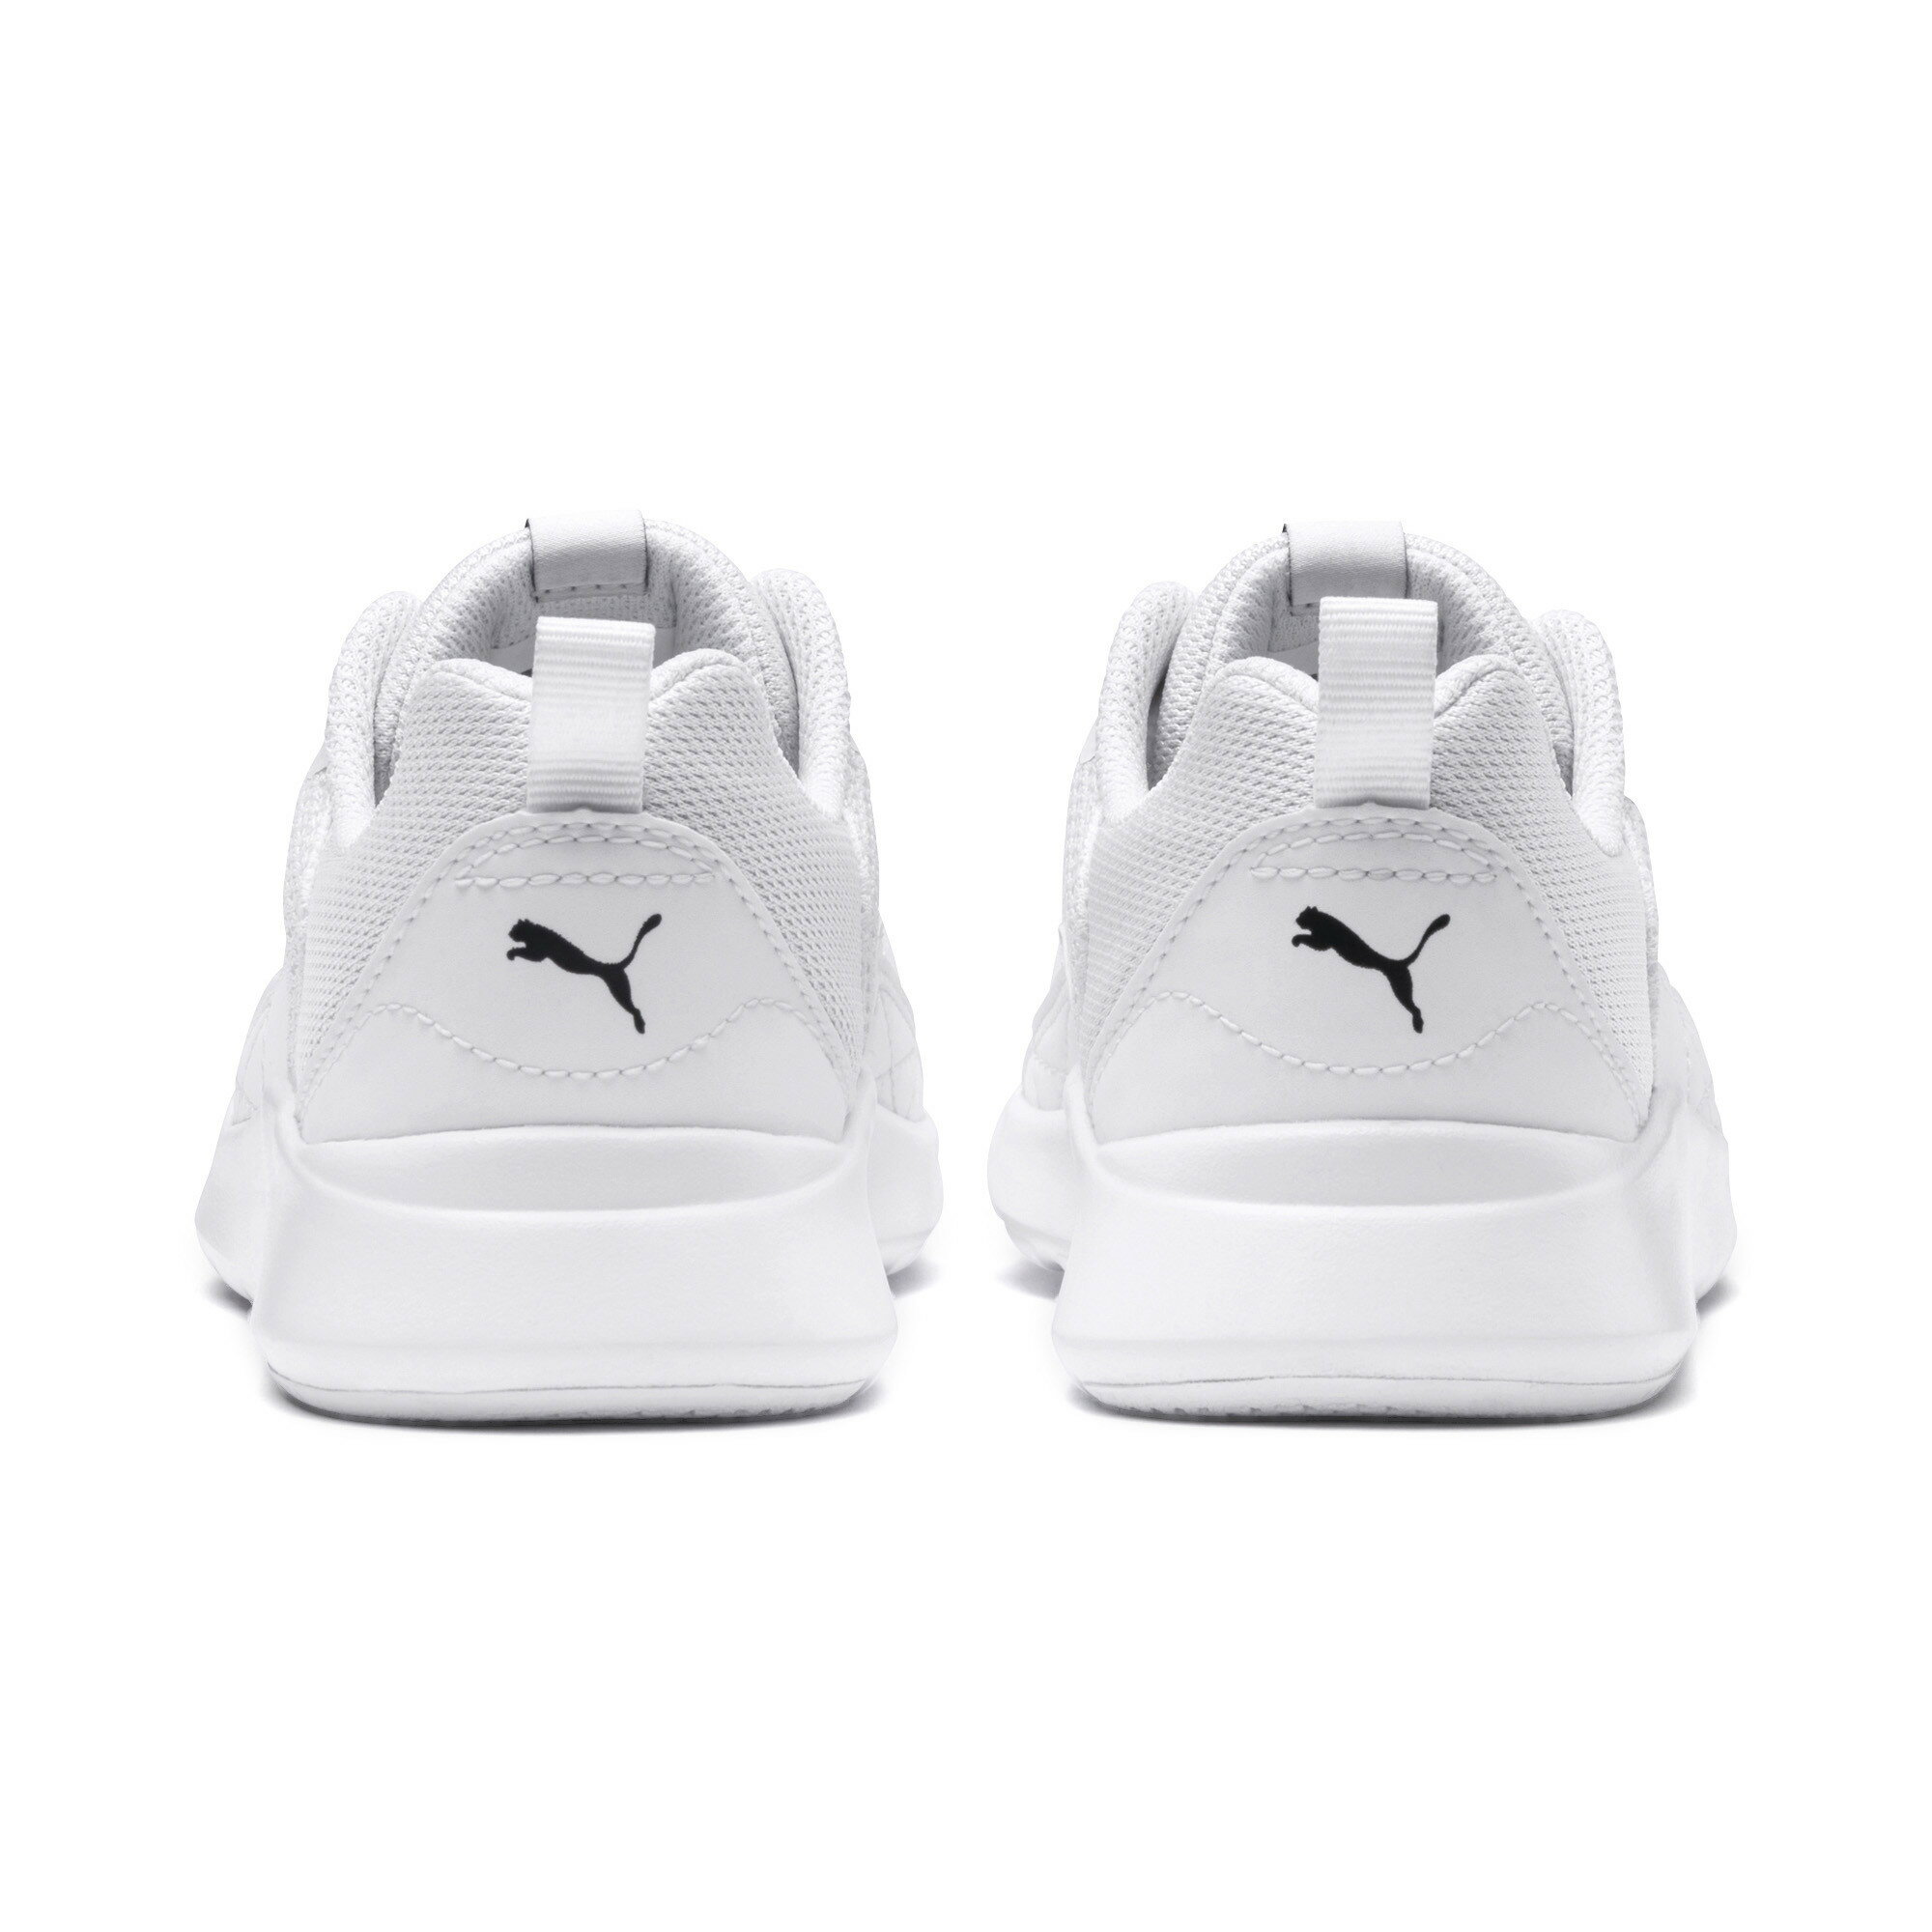 1c0c0e79377 Official Puma Store  PUMA Wired Sneakers